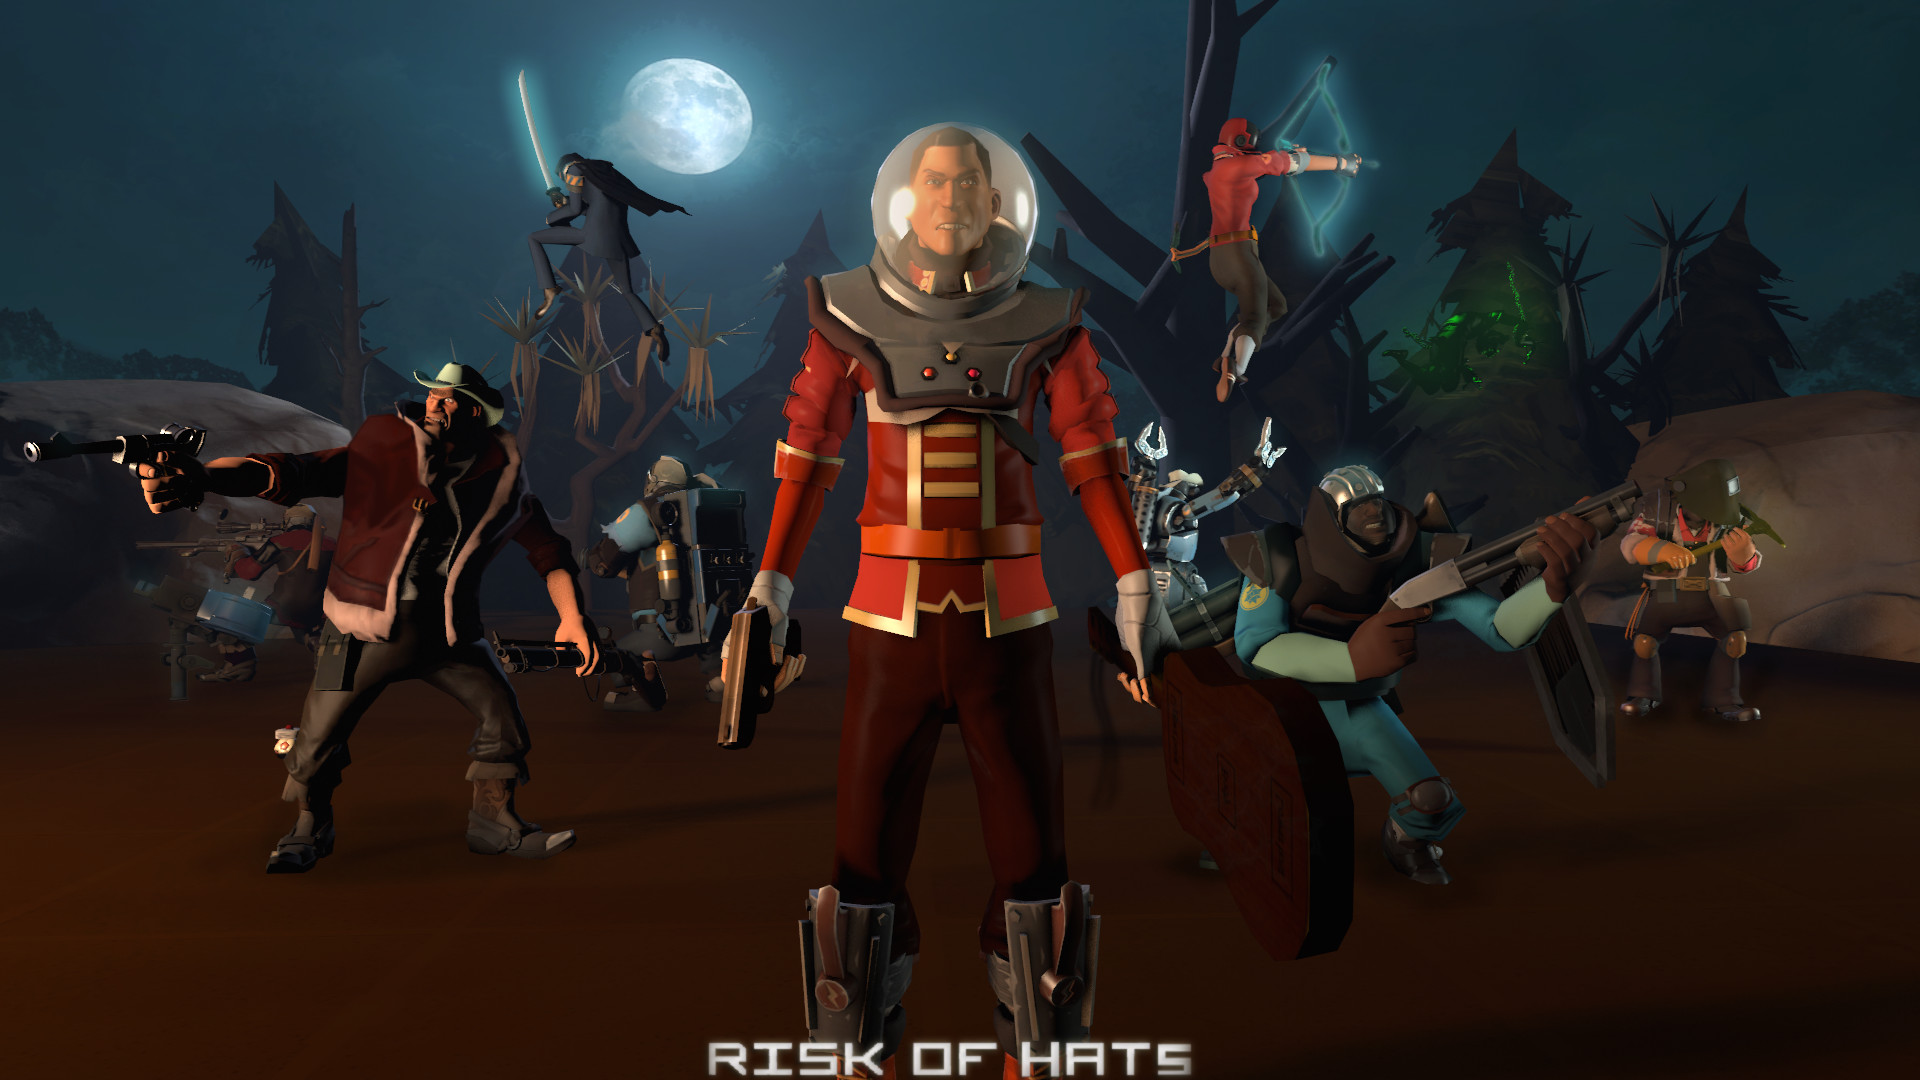 Risk of Hats (Team Fortress 2 X Risk of Rain) by finalleet on .